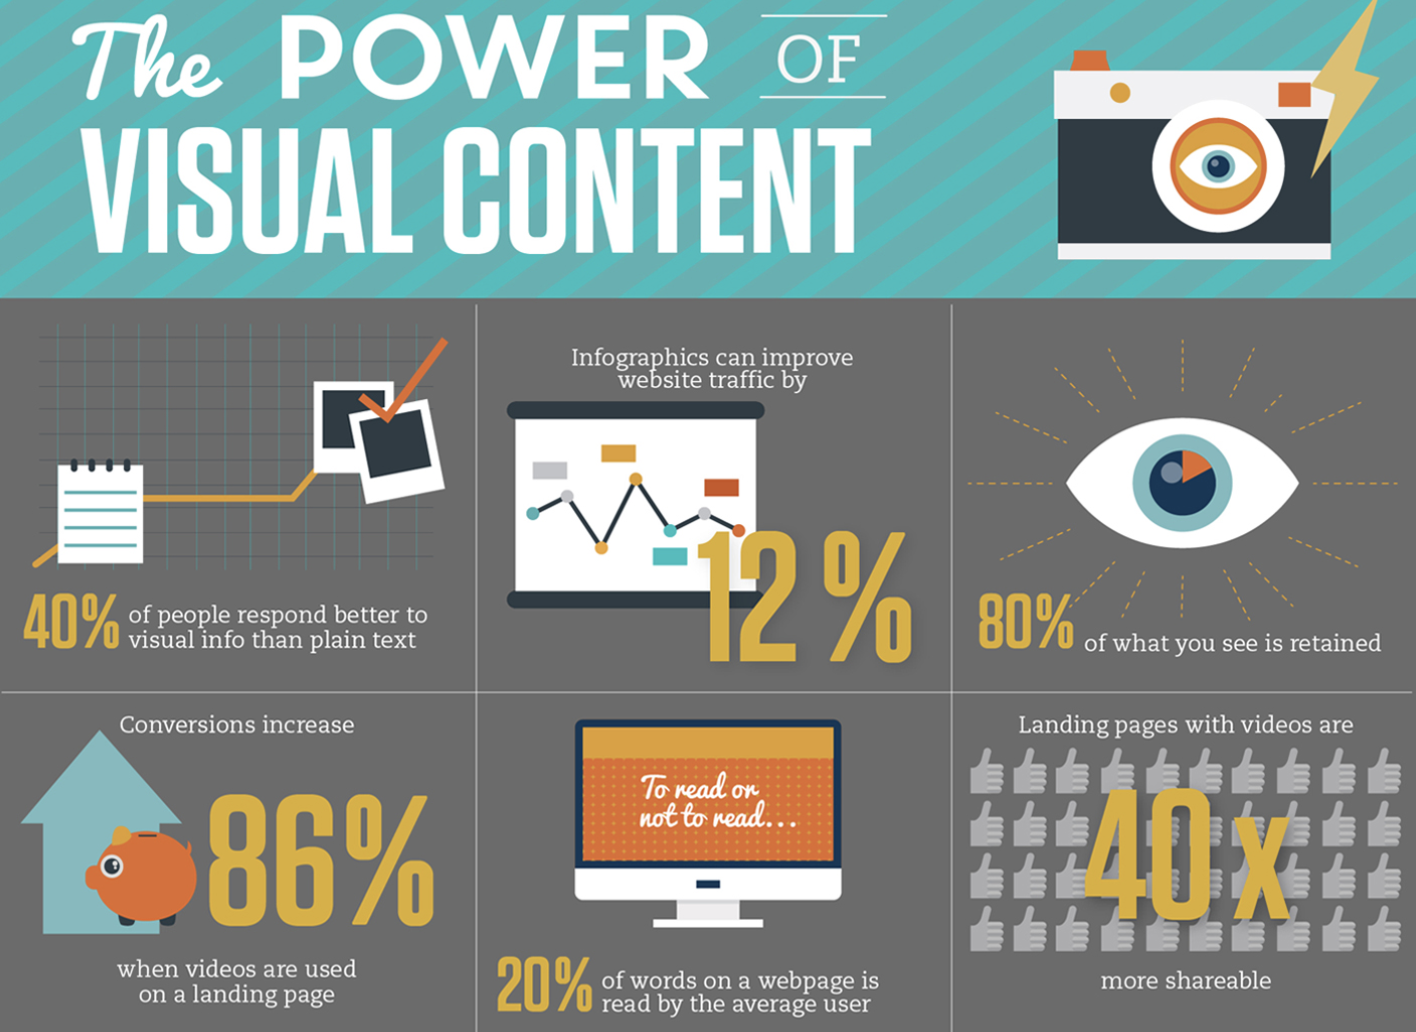 repurpose content into an infographic